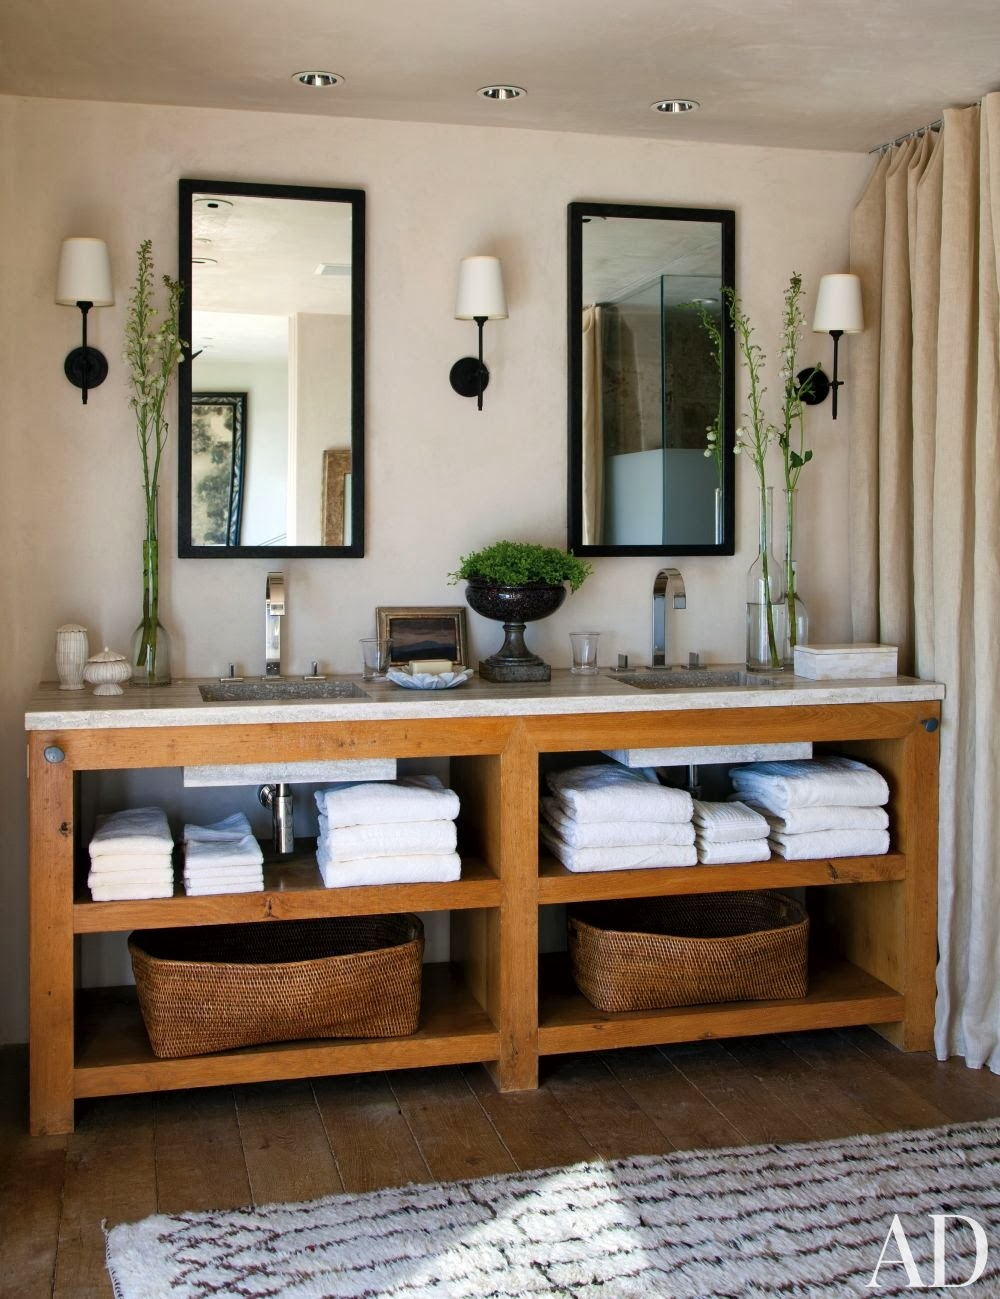 Refresheddesigns seven stunning modern rustic bathrooms for Bathroom salle de bain